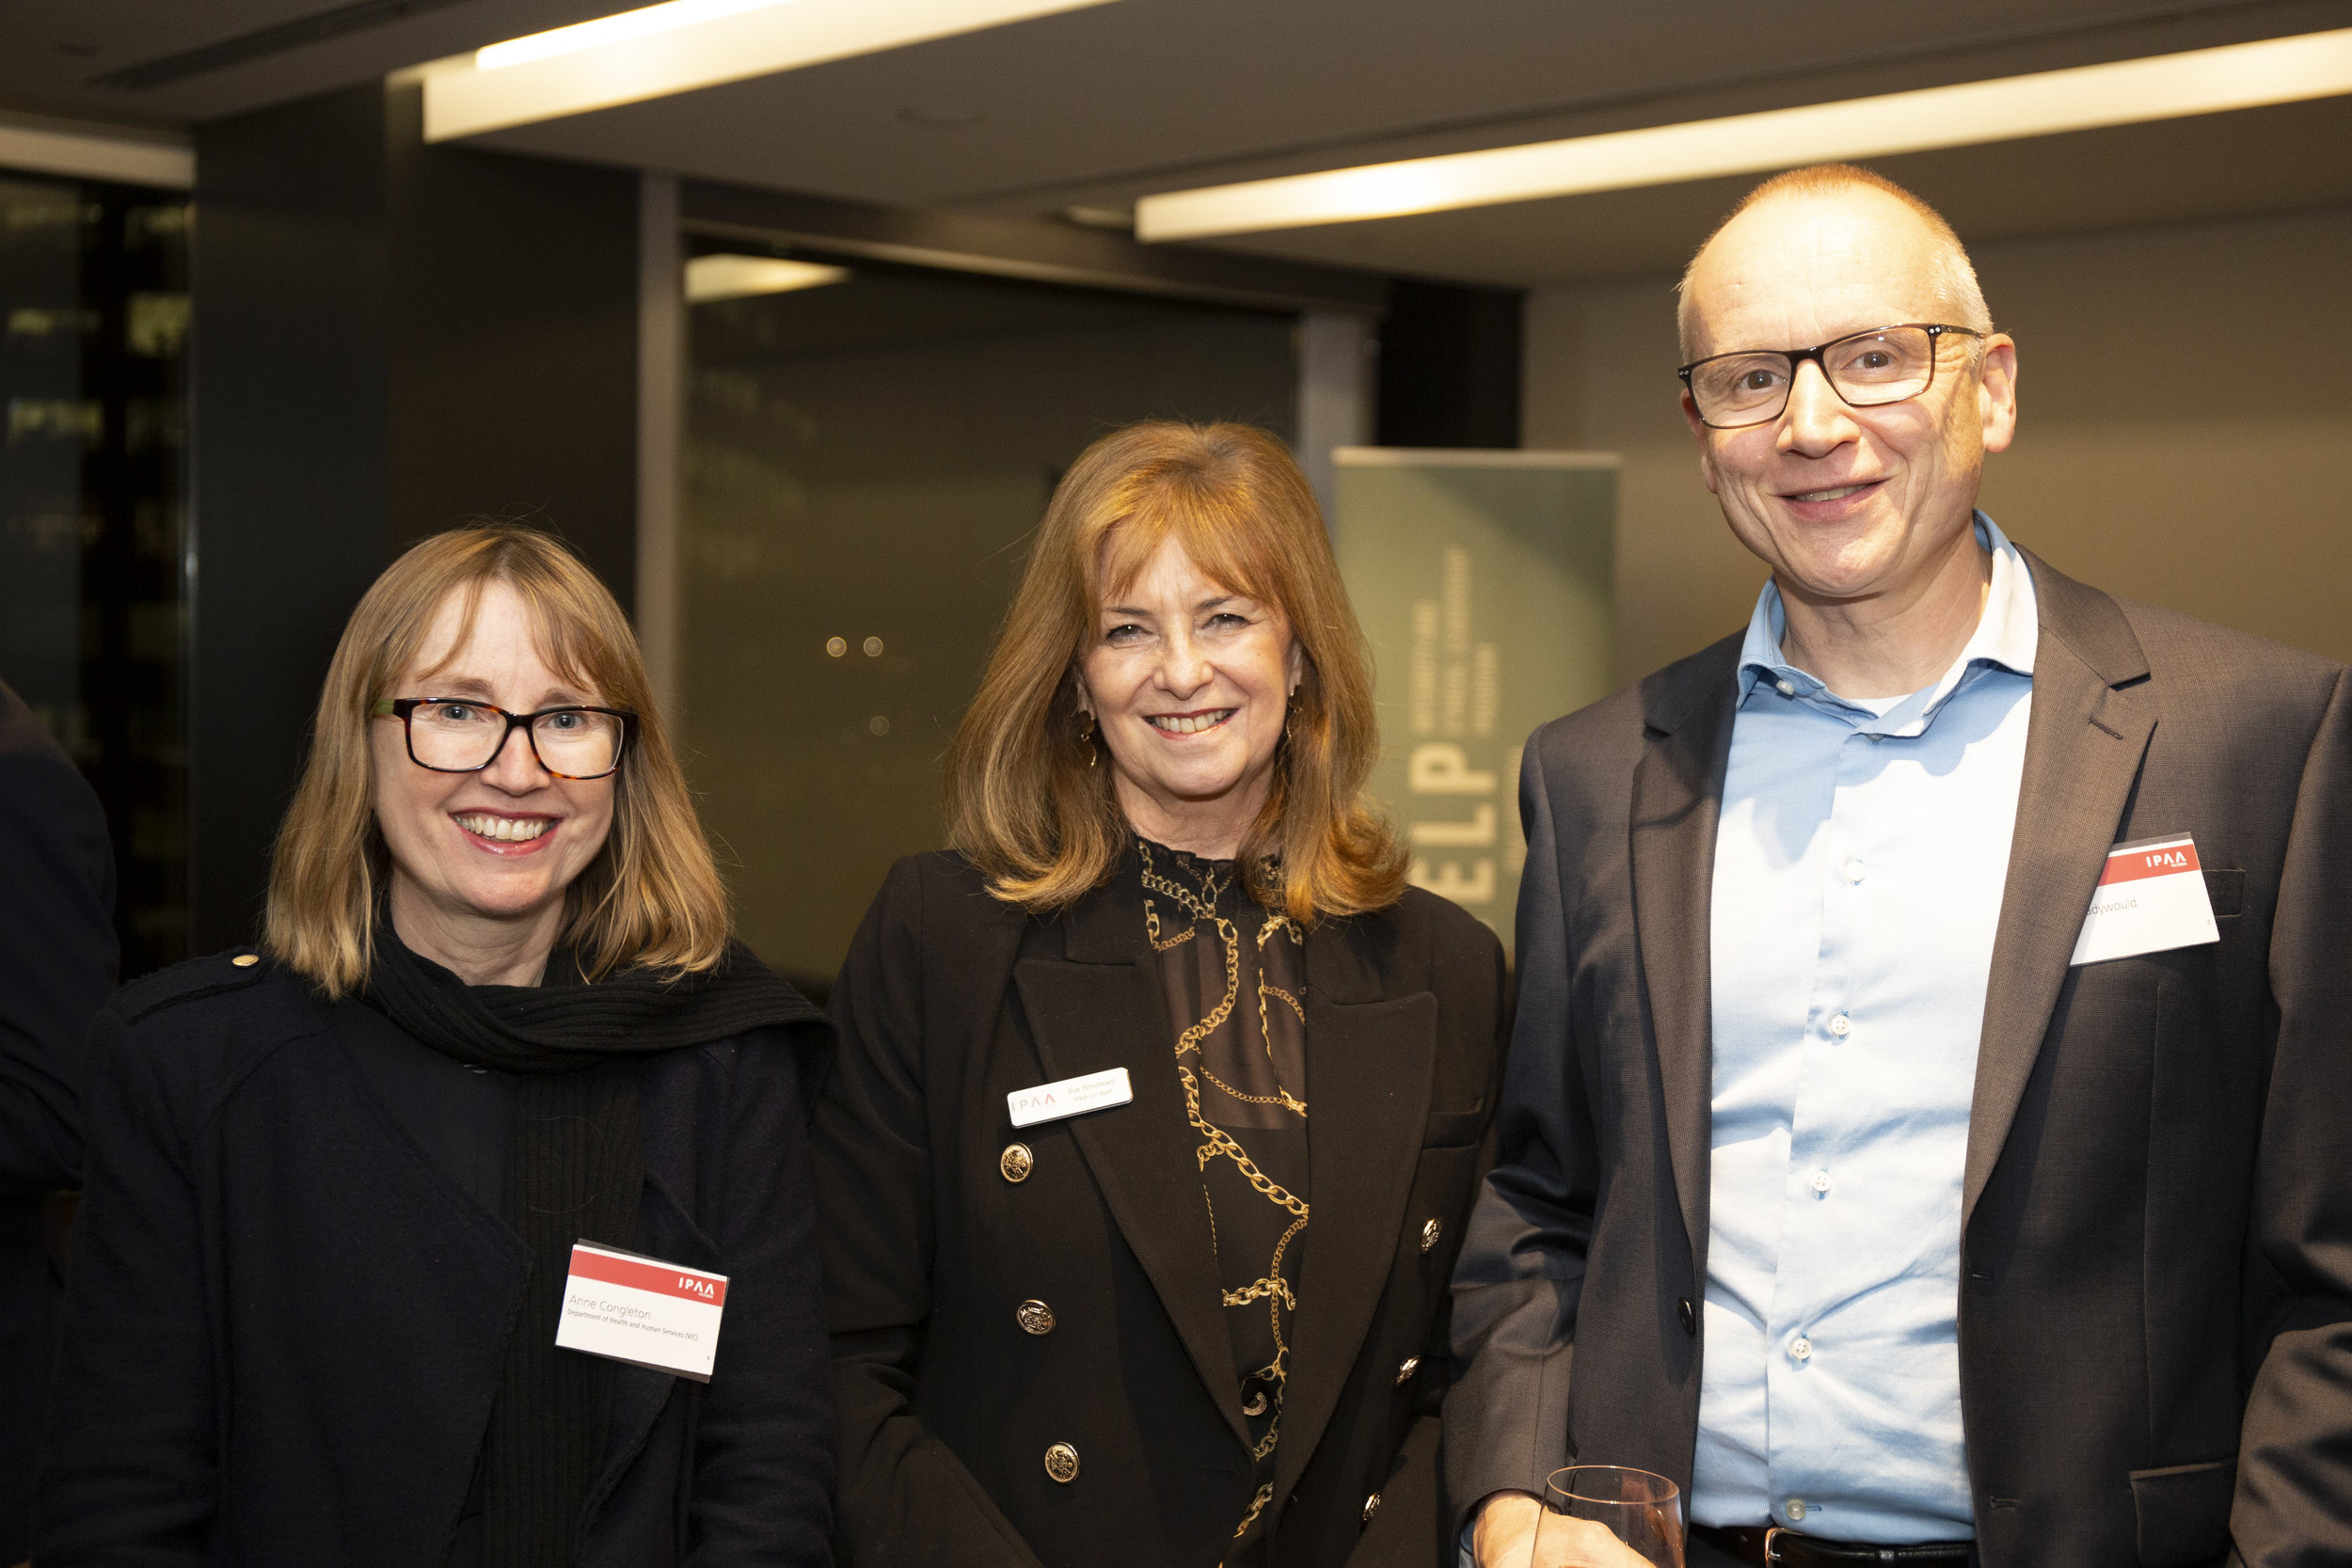 Left to right: IELP alumnae Anne Congleton (DHHS); IPAA Victoria's Sue Woodward; and IELP alumnus Nigel Cadywood (Cinitex)